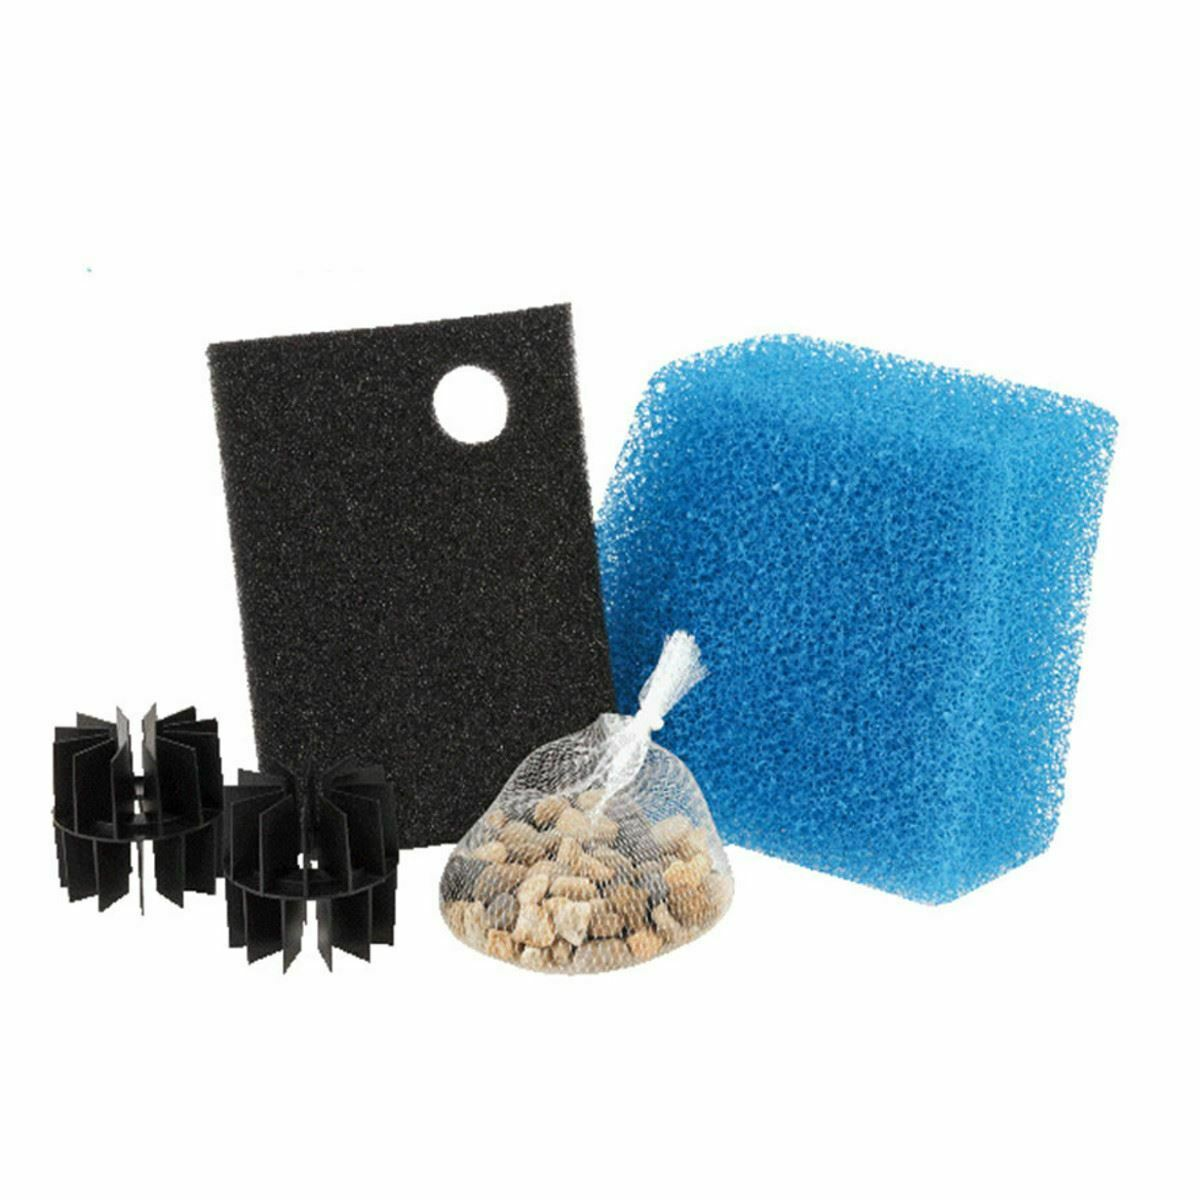 OASE FILTRAL REPLACEMENT FILTER MEDIA KIT POND ALL IN ONE SYSTEM FILTRATION FOAM